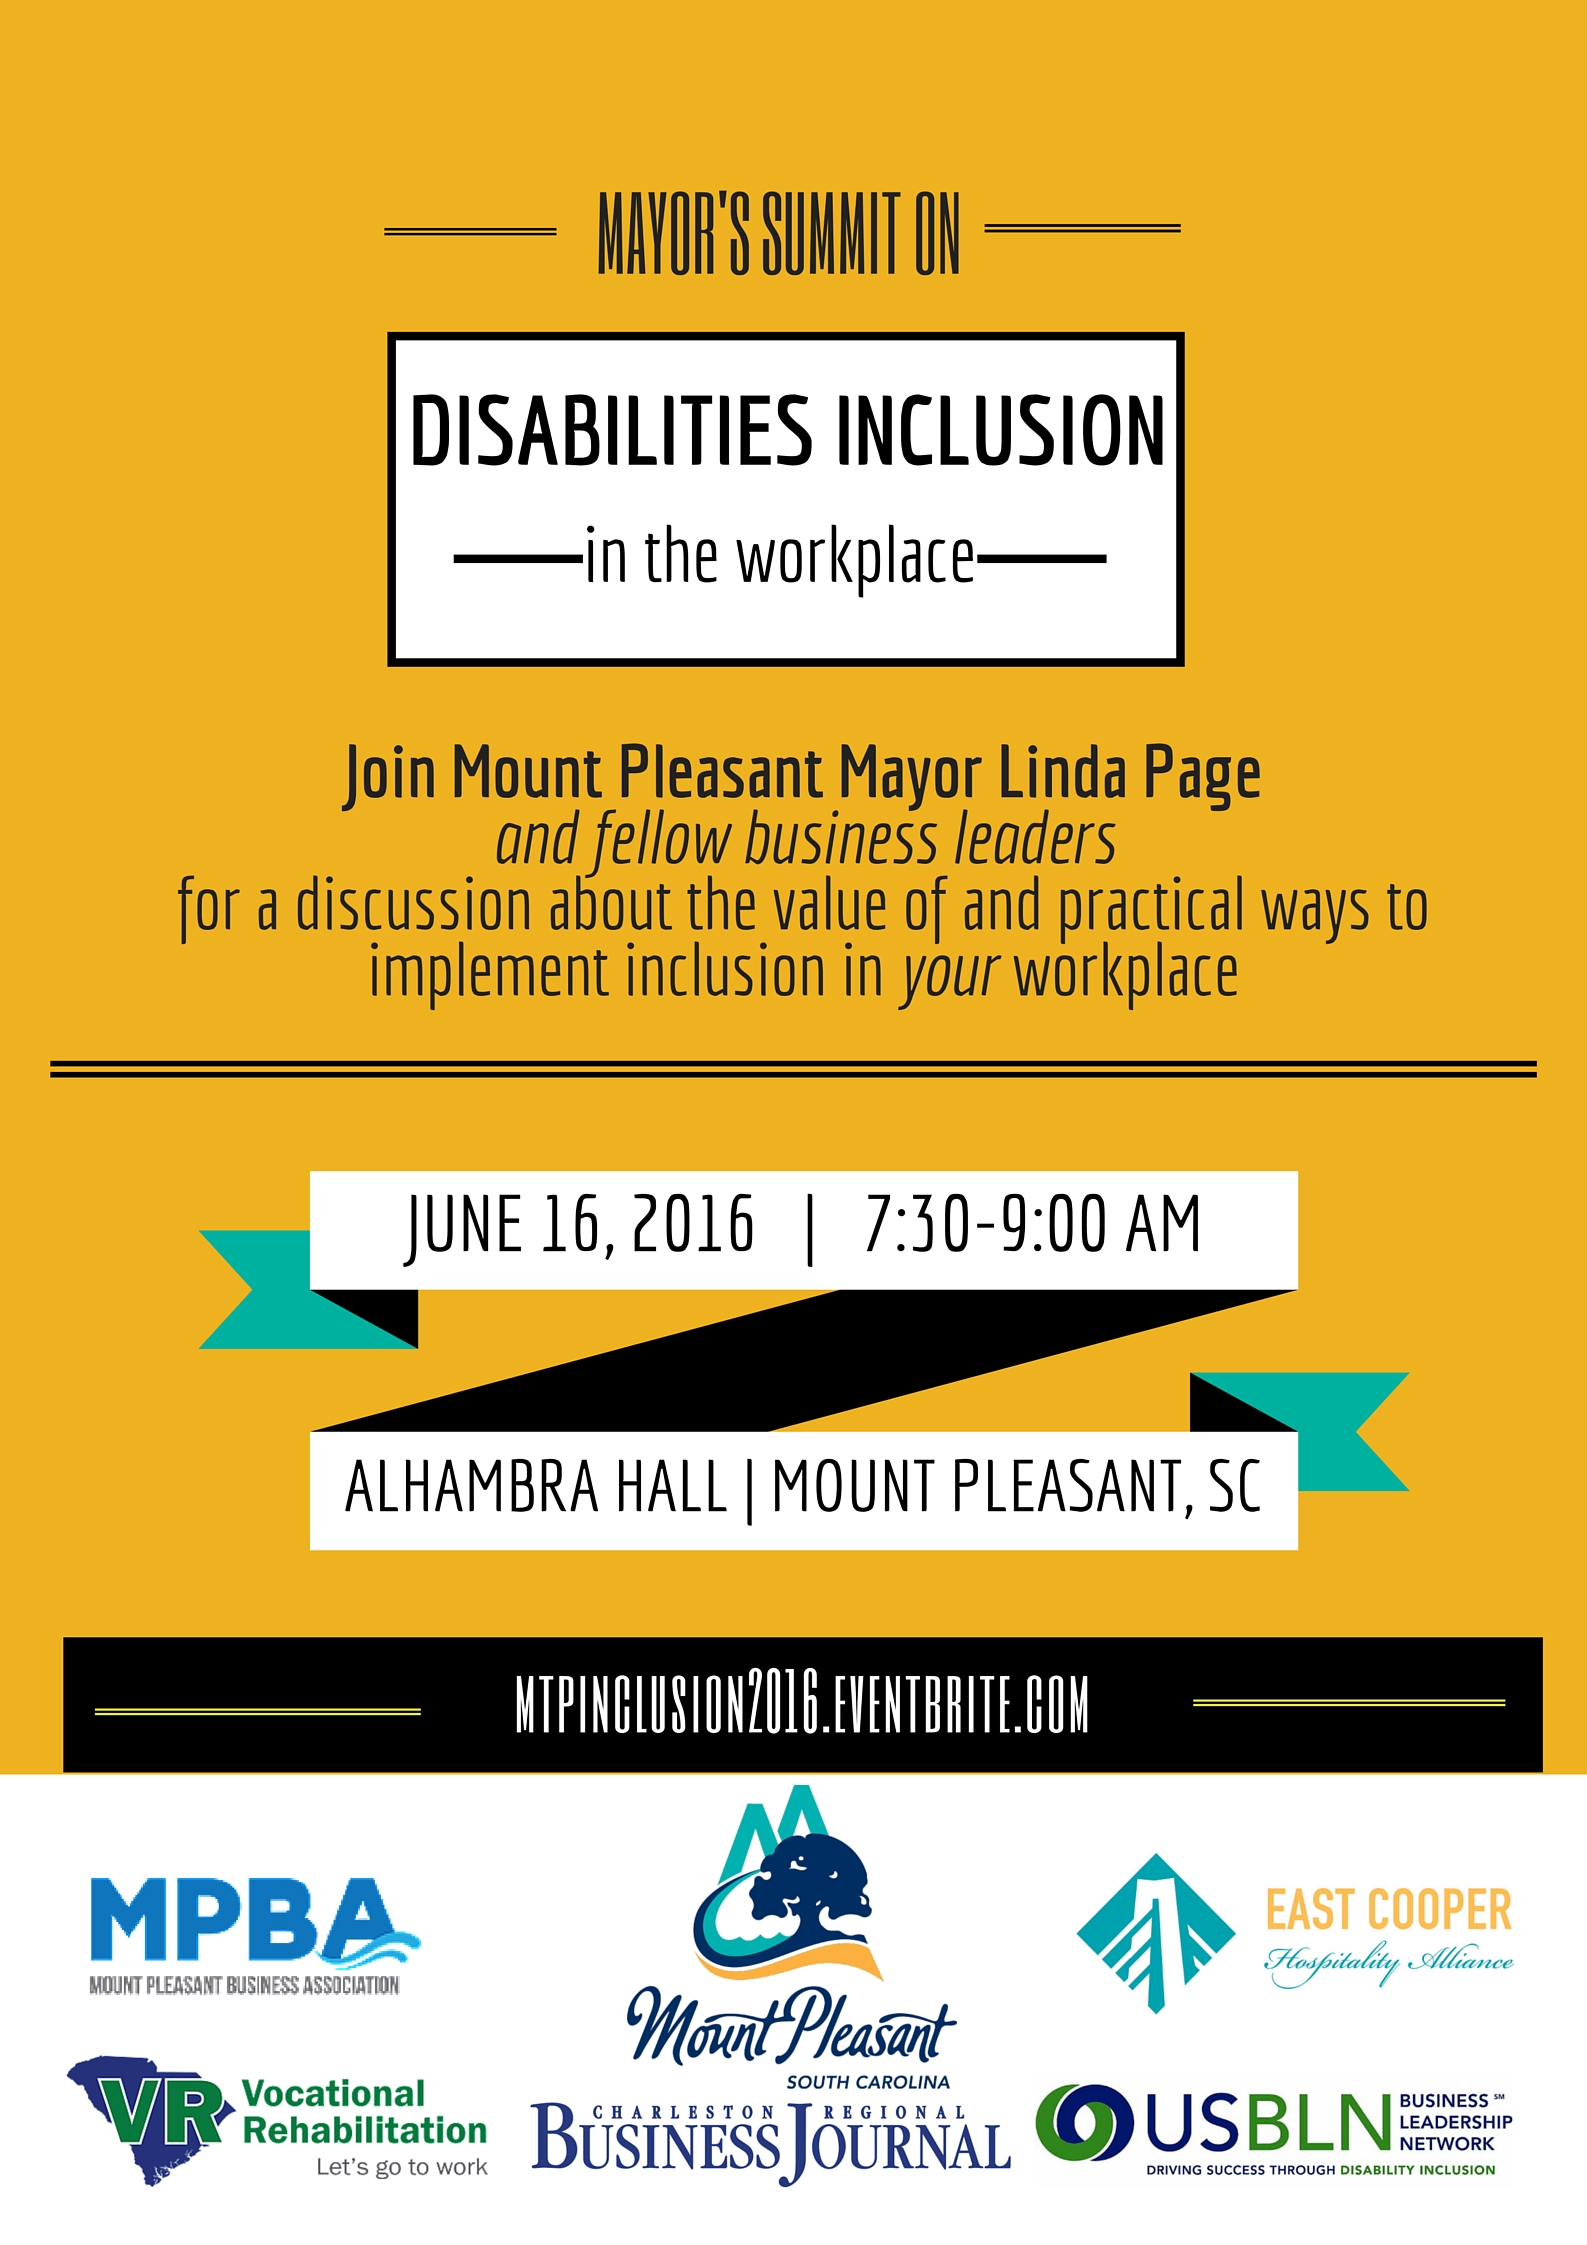 Mt Pleasant Disabilities Inclusion in the Workplace